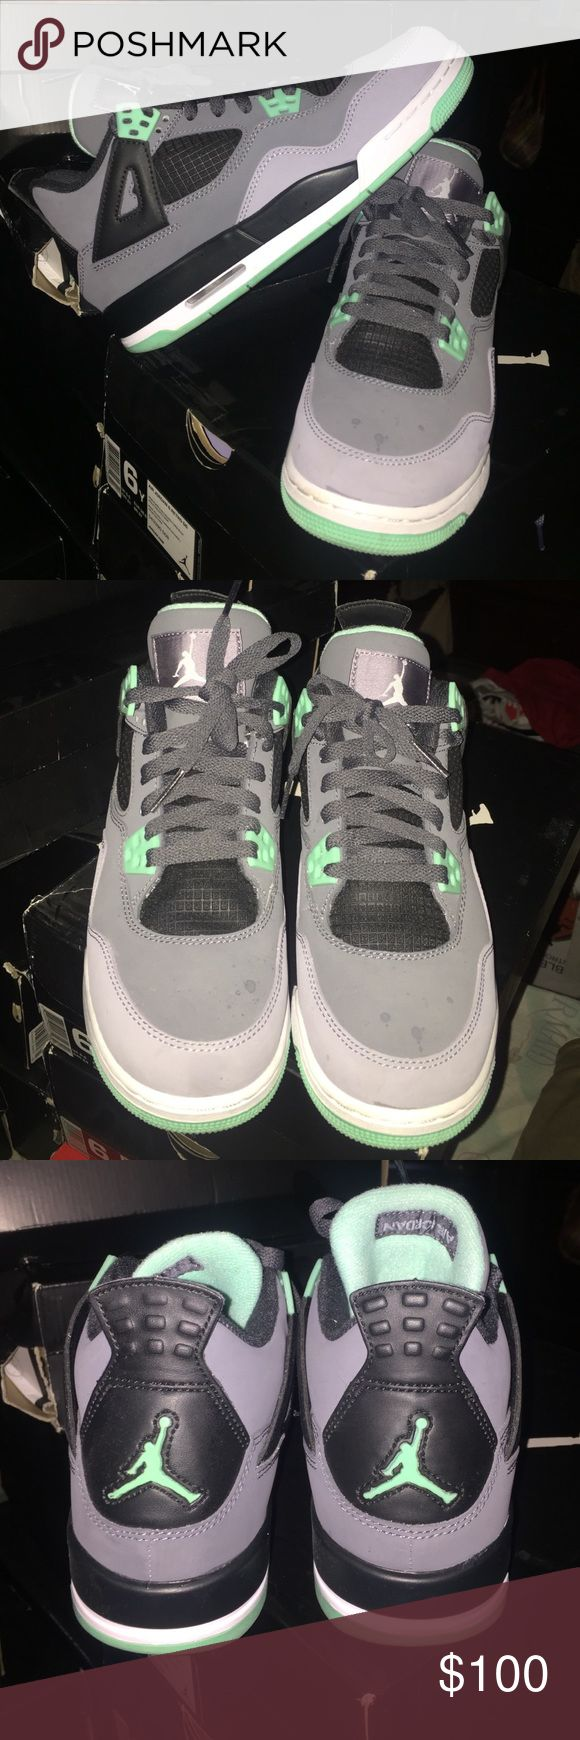 Jordan Green Glow Barely used only small flaw is in the front see second pic but nothing mayor. Size 6YOUTH NO TRADE please be mindful about Posh fee 20% Shoes Sneakers